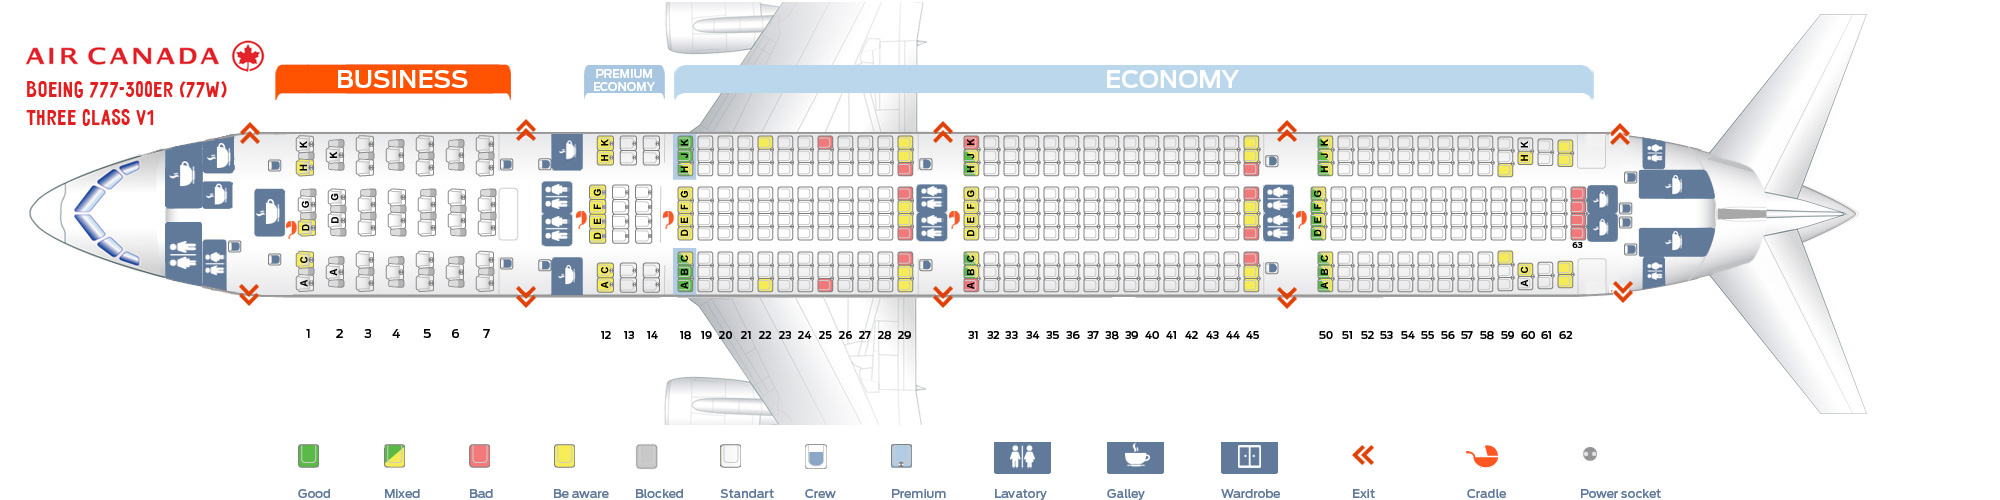 Seat map Boeing 777-300 Air-Canada ver1